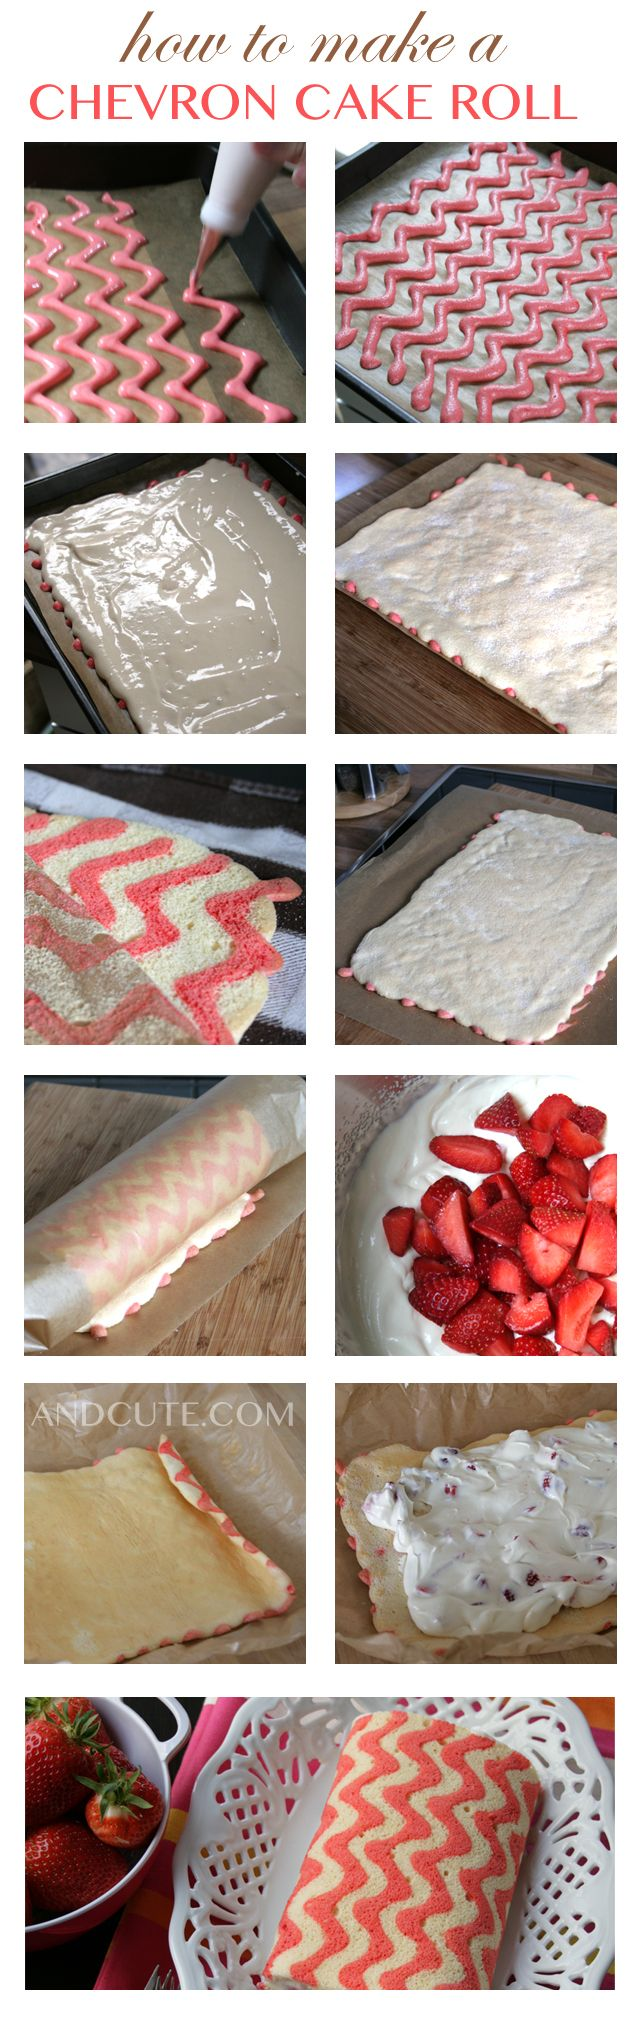 4 egg whites 4 egg yolks 70g fine sugar 10g sugar 6g vanilla sugar (or 1/2 tsp. vanilla extract) 70g flour food color Filling 1 and 1/2 cups white chocolate (chopped) 1 cup heavy whipping cream 3/4 cup fresh strawberries (quartered)